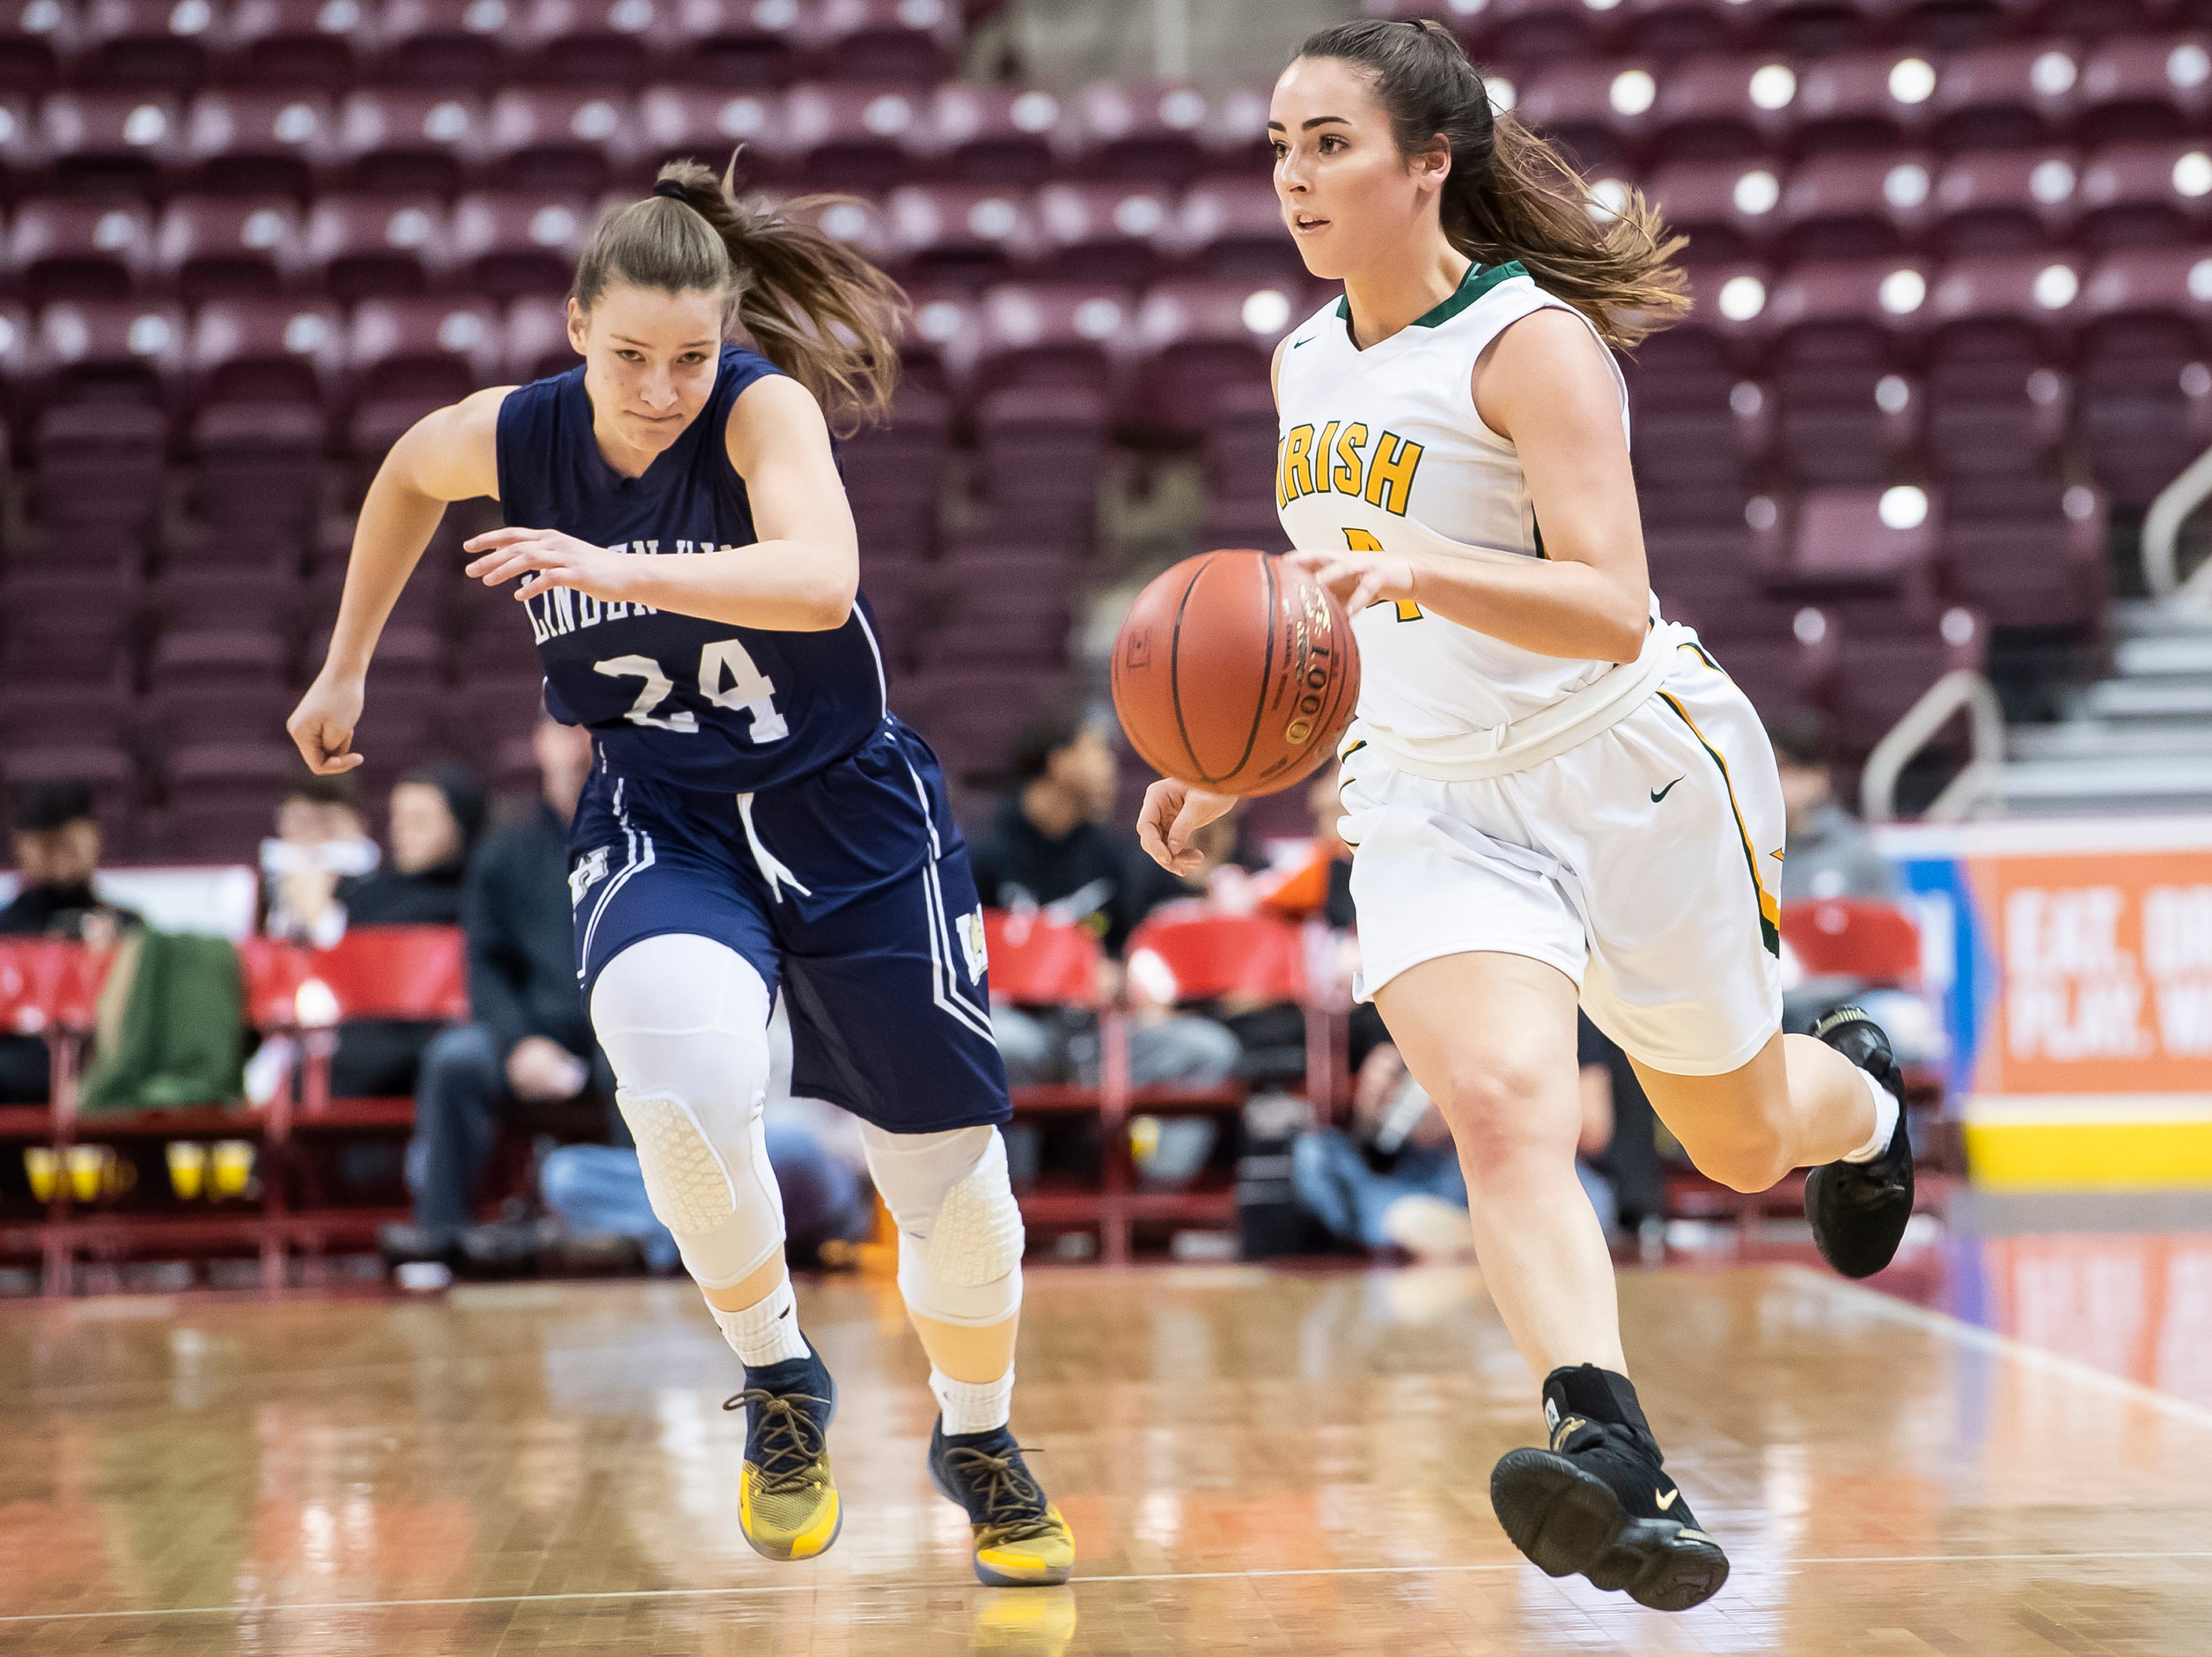 York Catholic's Gina Citrone drives down the court during the District 3 2-A girls championship game against Linden Hall at the Giant Center in Hershey Tuesday, Feb. 26, 2019. The Fighting Irish fell 56-27.